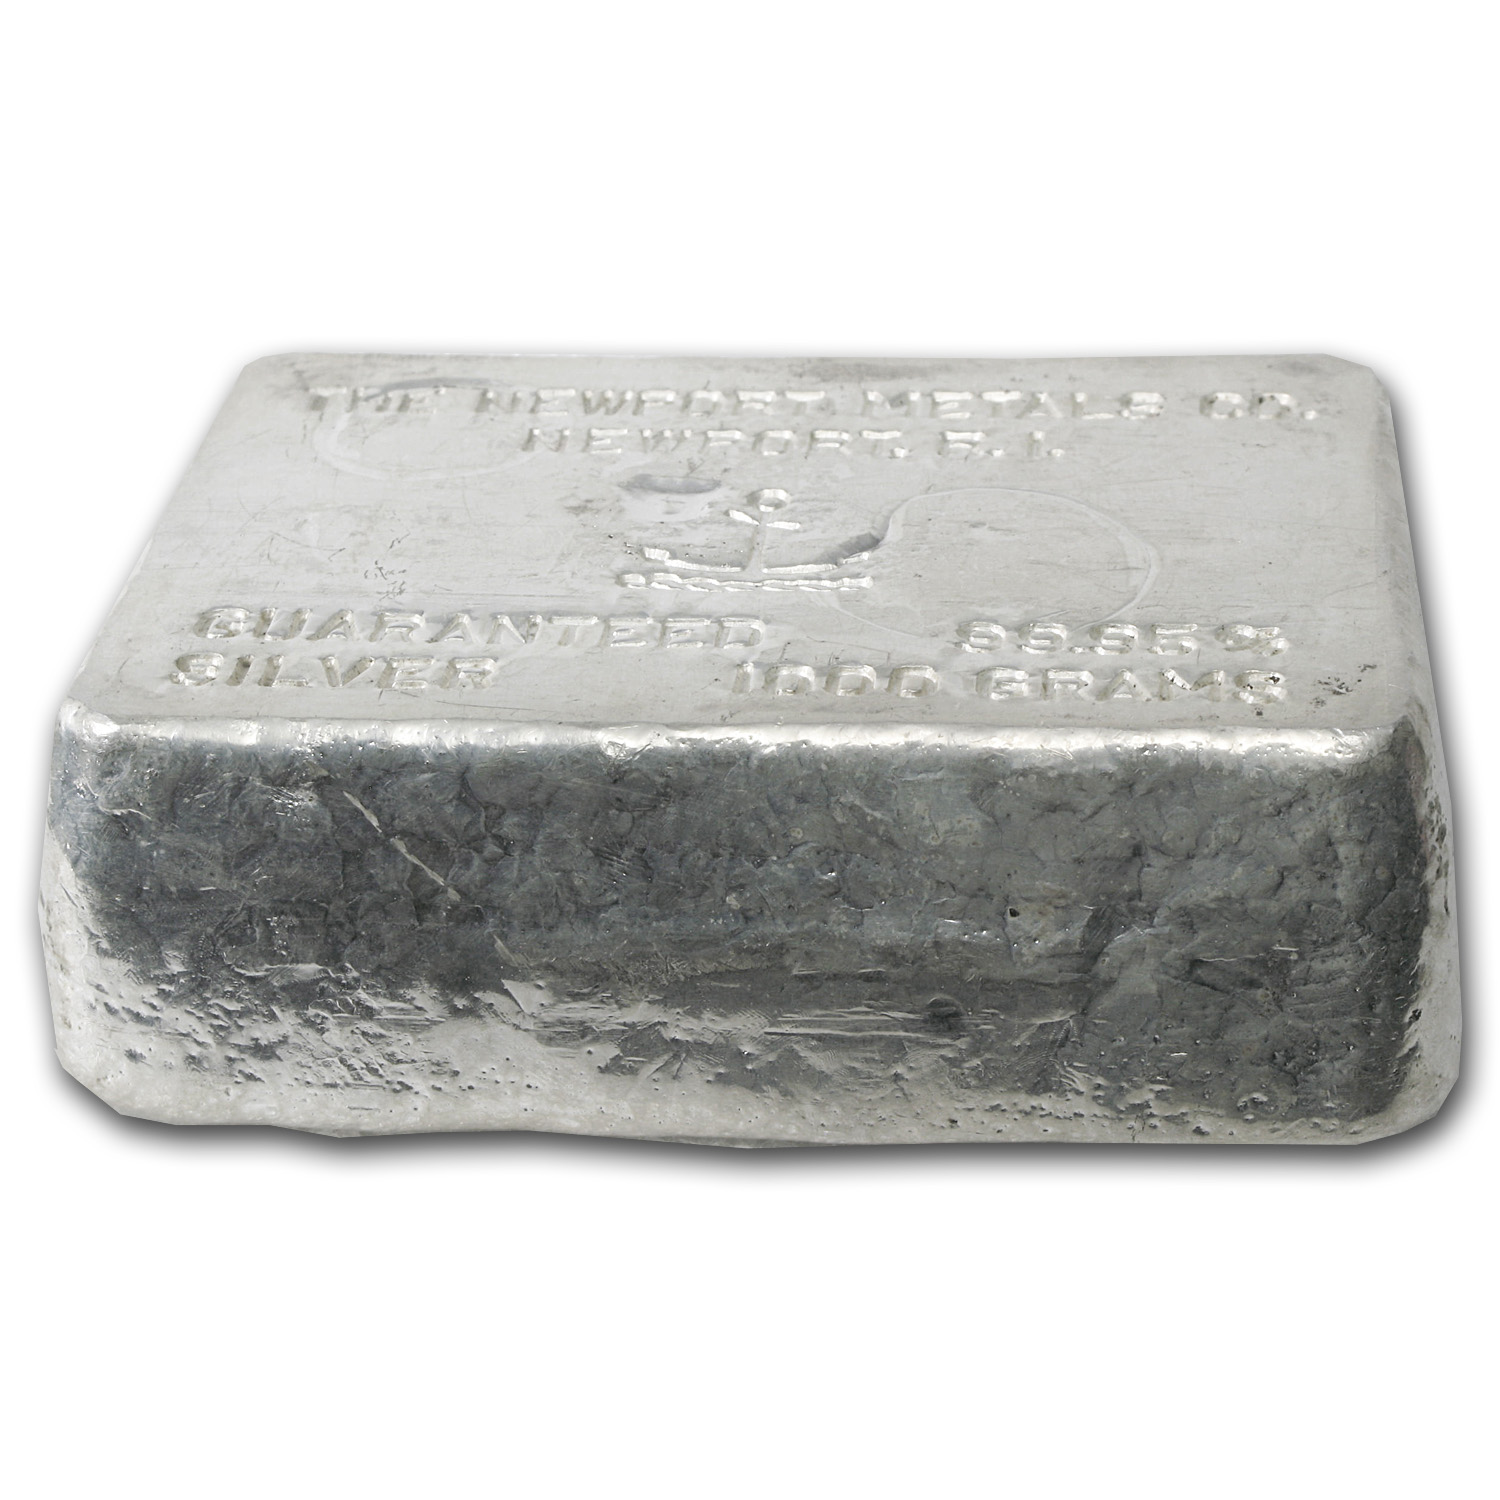 1 Kilo Silver Bars - Newport Metals Co. (1000 Gram)